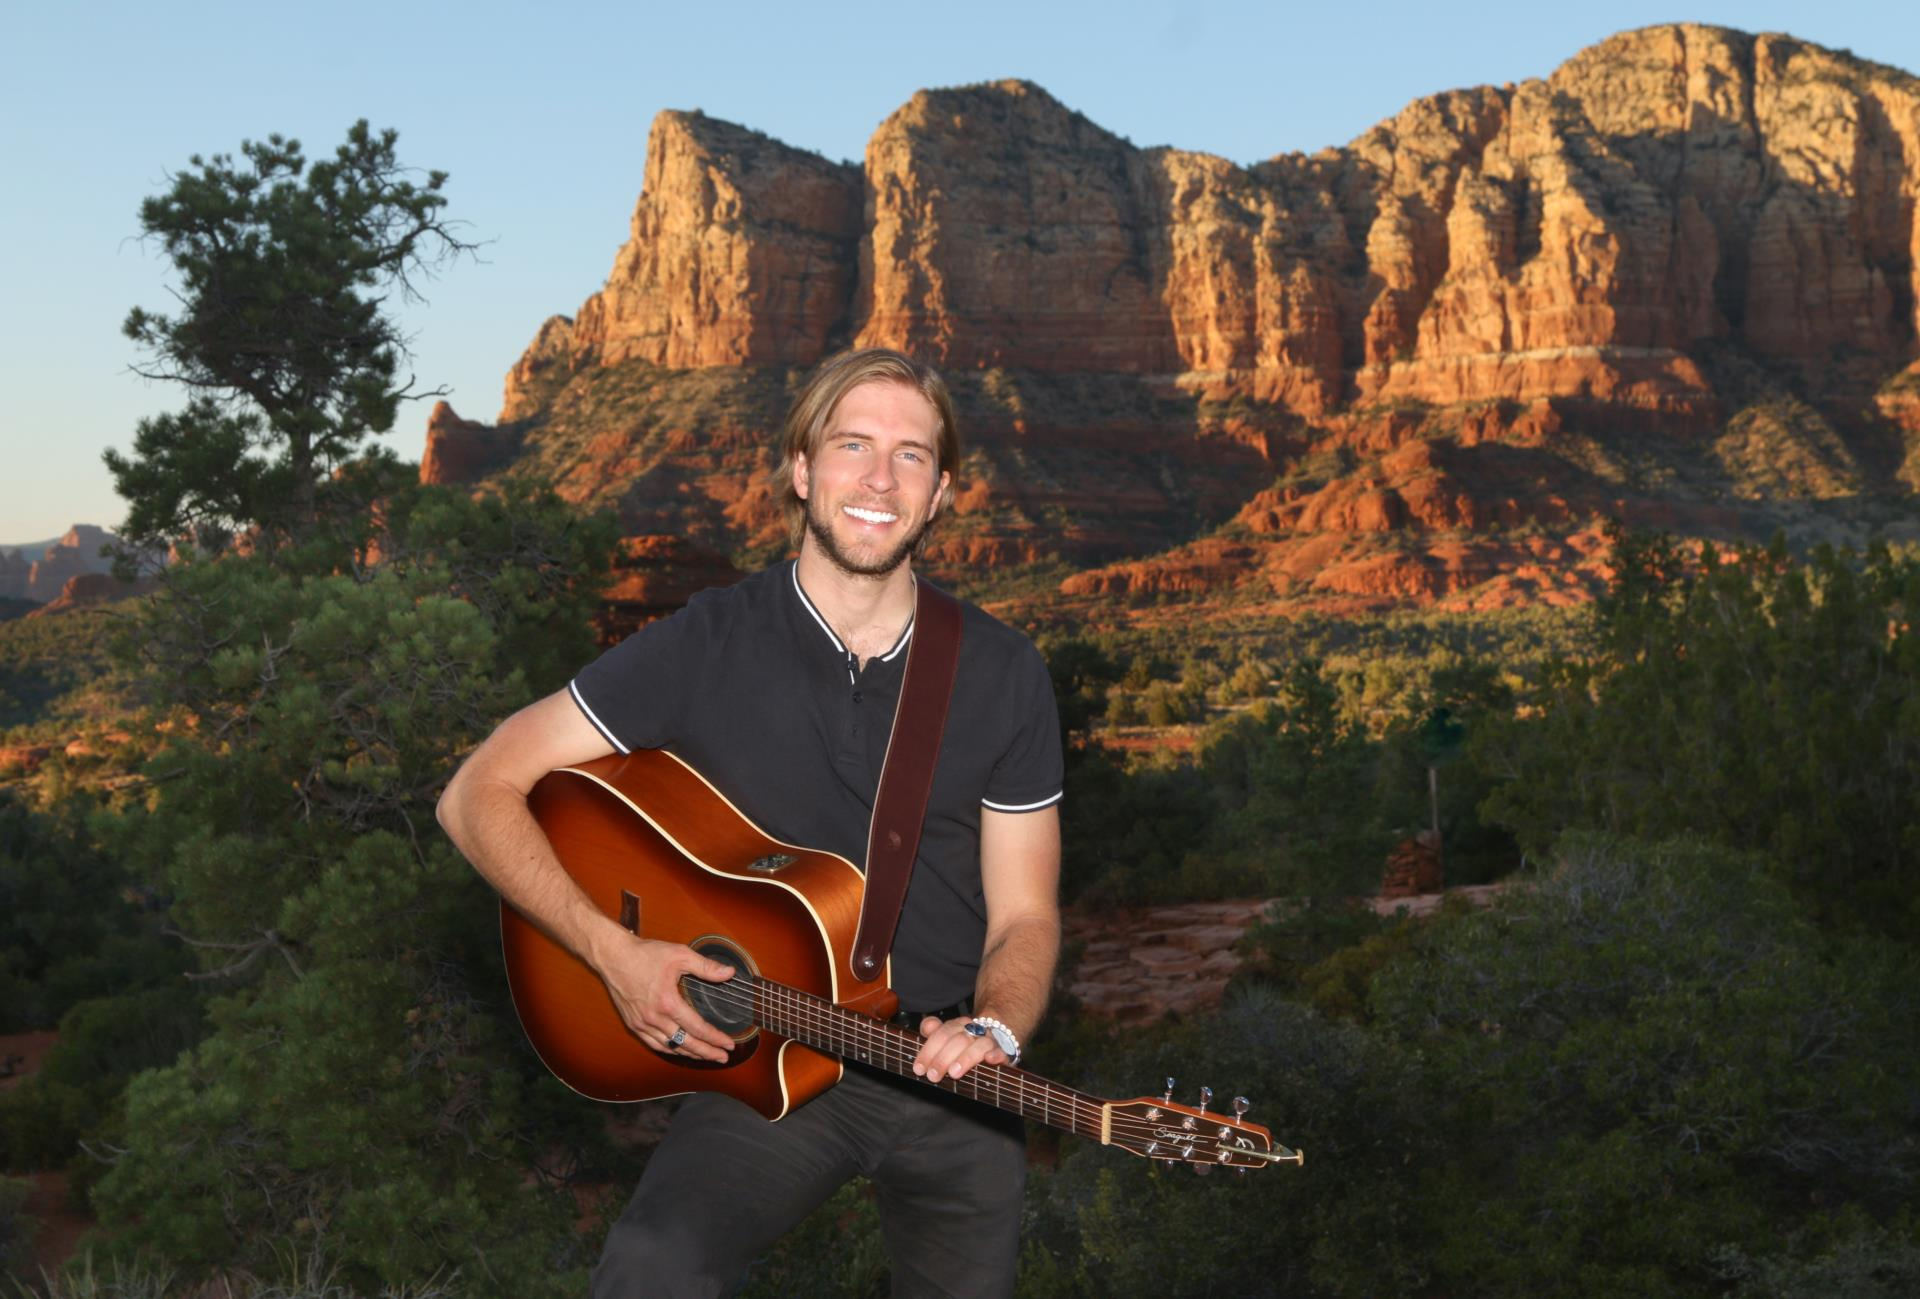 Dan with guitar red rock background